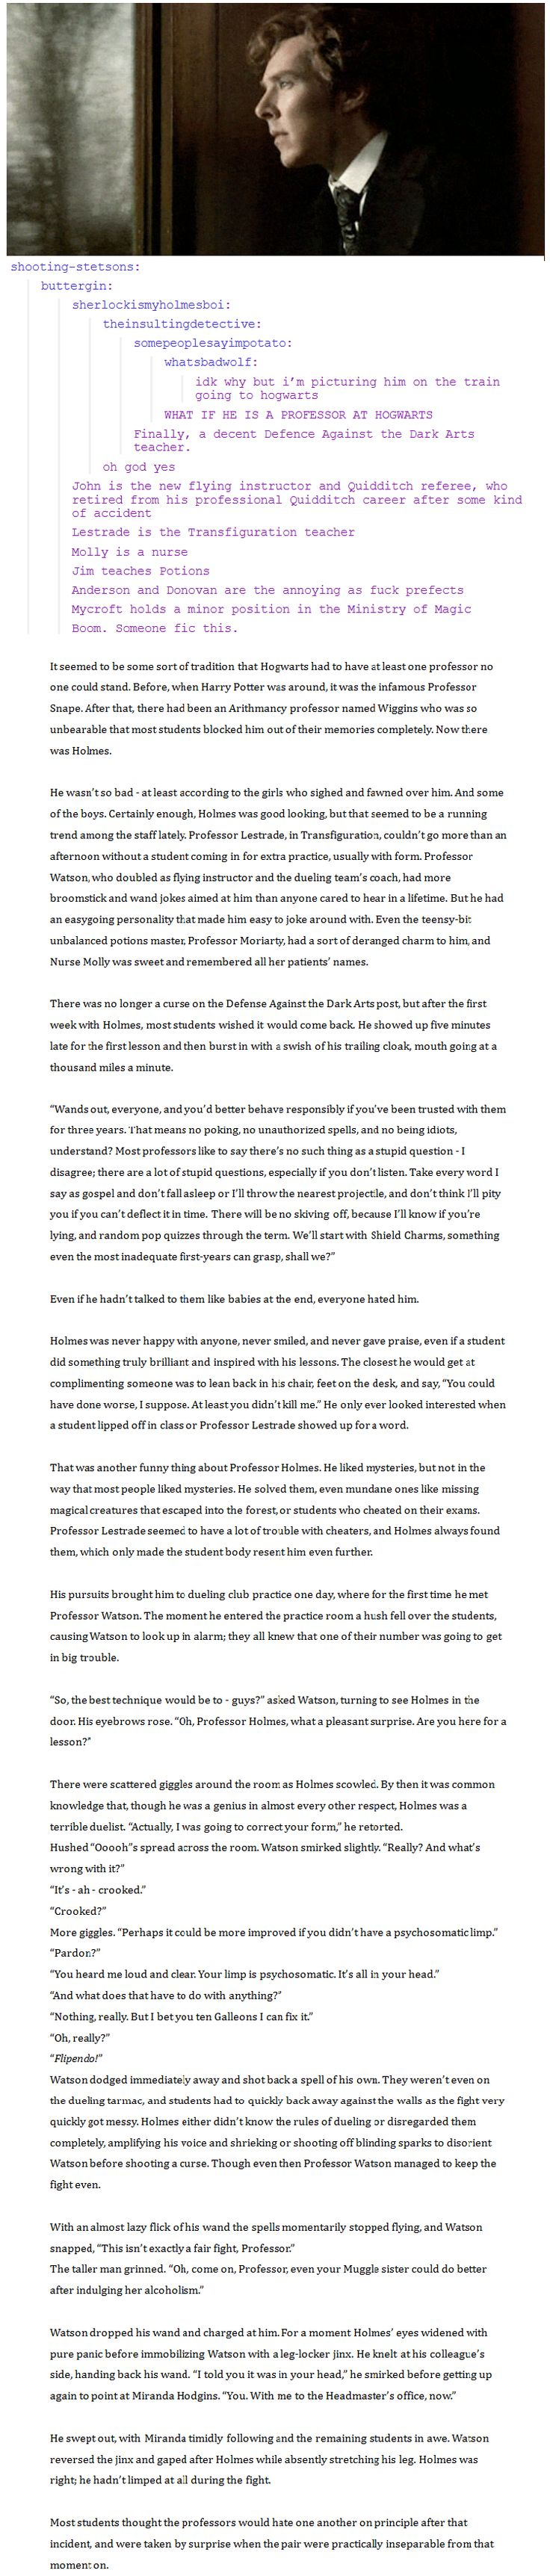 HP / Sherlock Fan Fic! AMAZING! I uploaded it as an image so its easier to read  (originally from http://randomsherlockian.tumblr.com/post/62749594579/shooting-stetsons-buttergin)// cool!